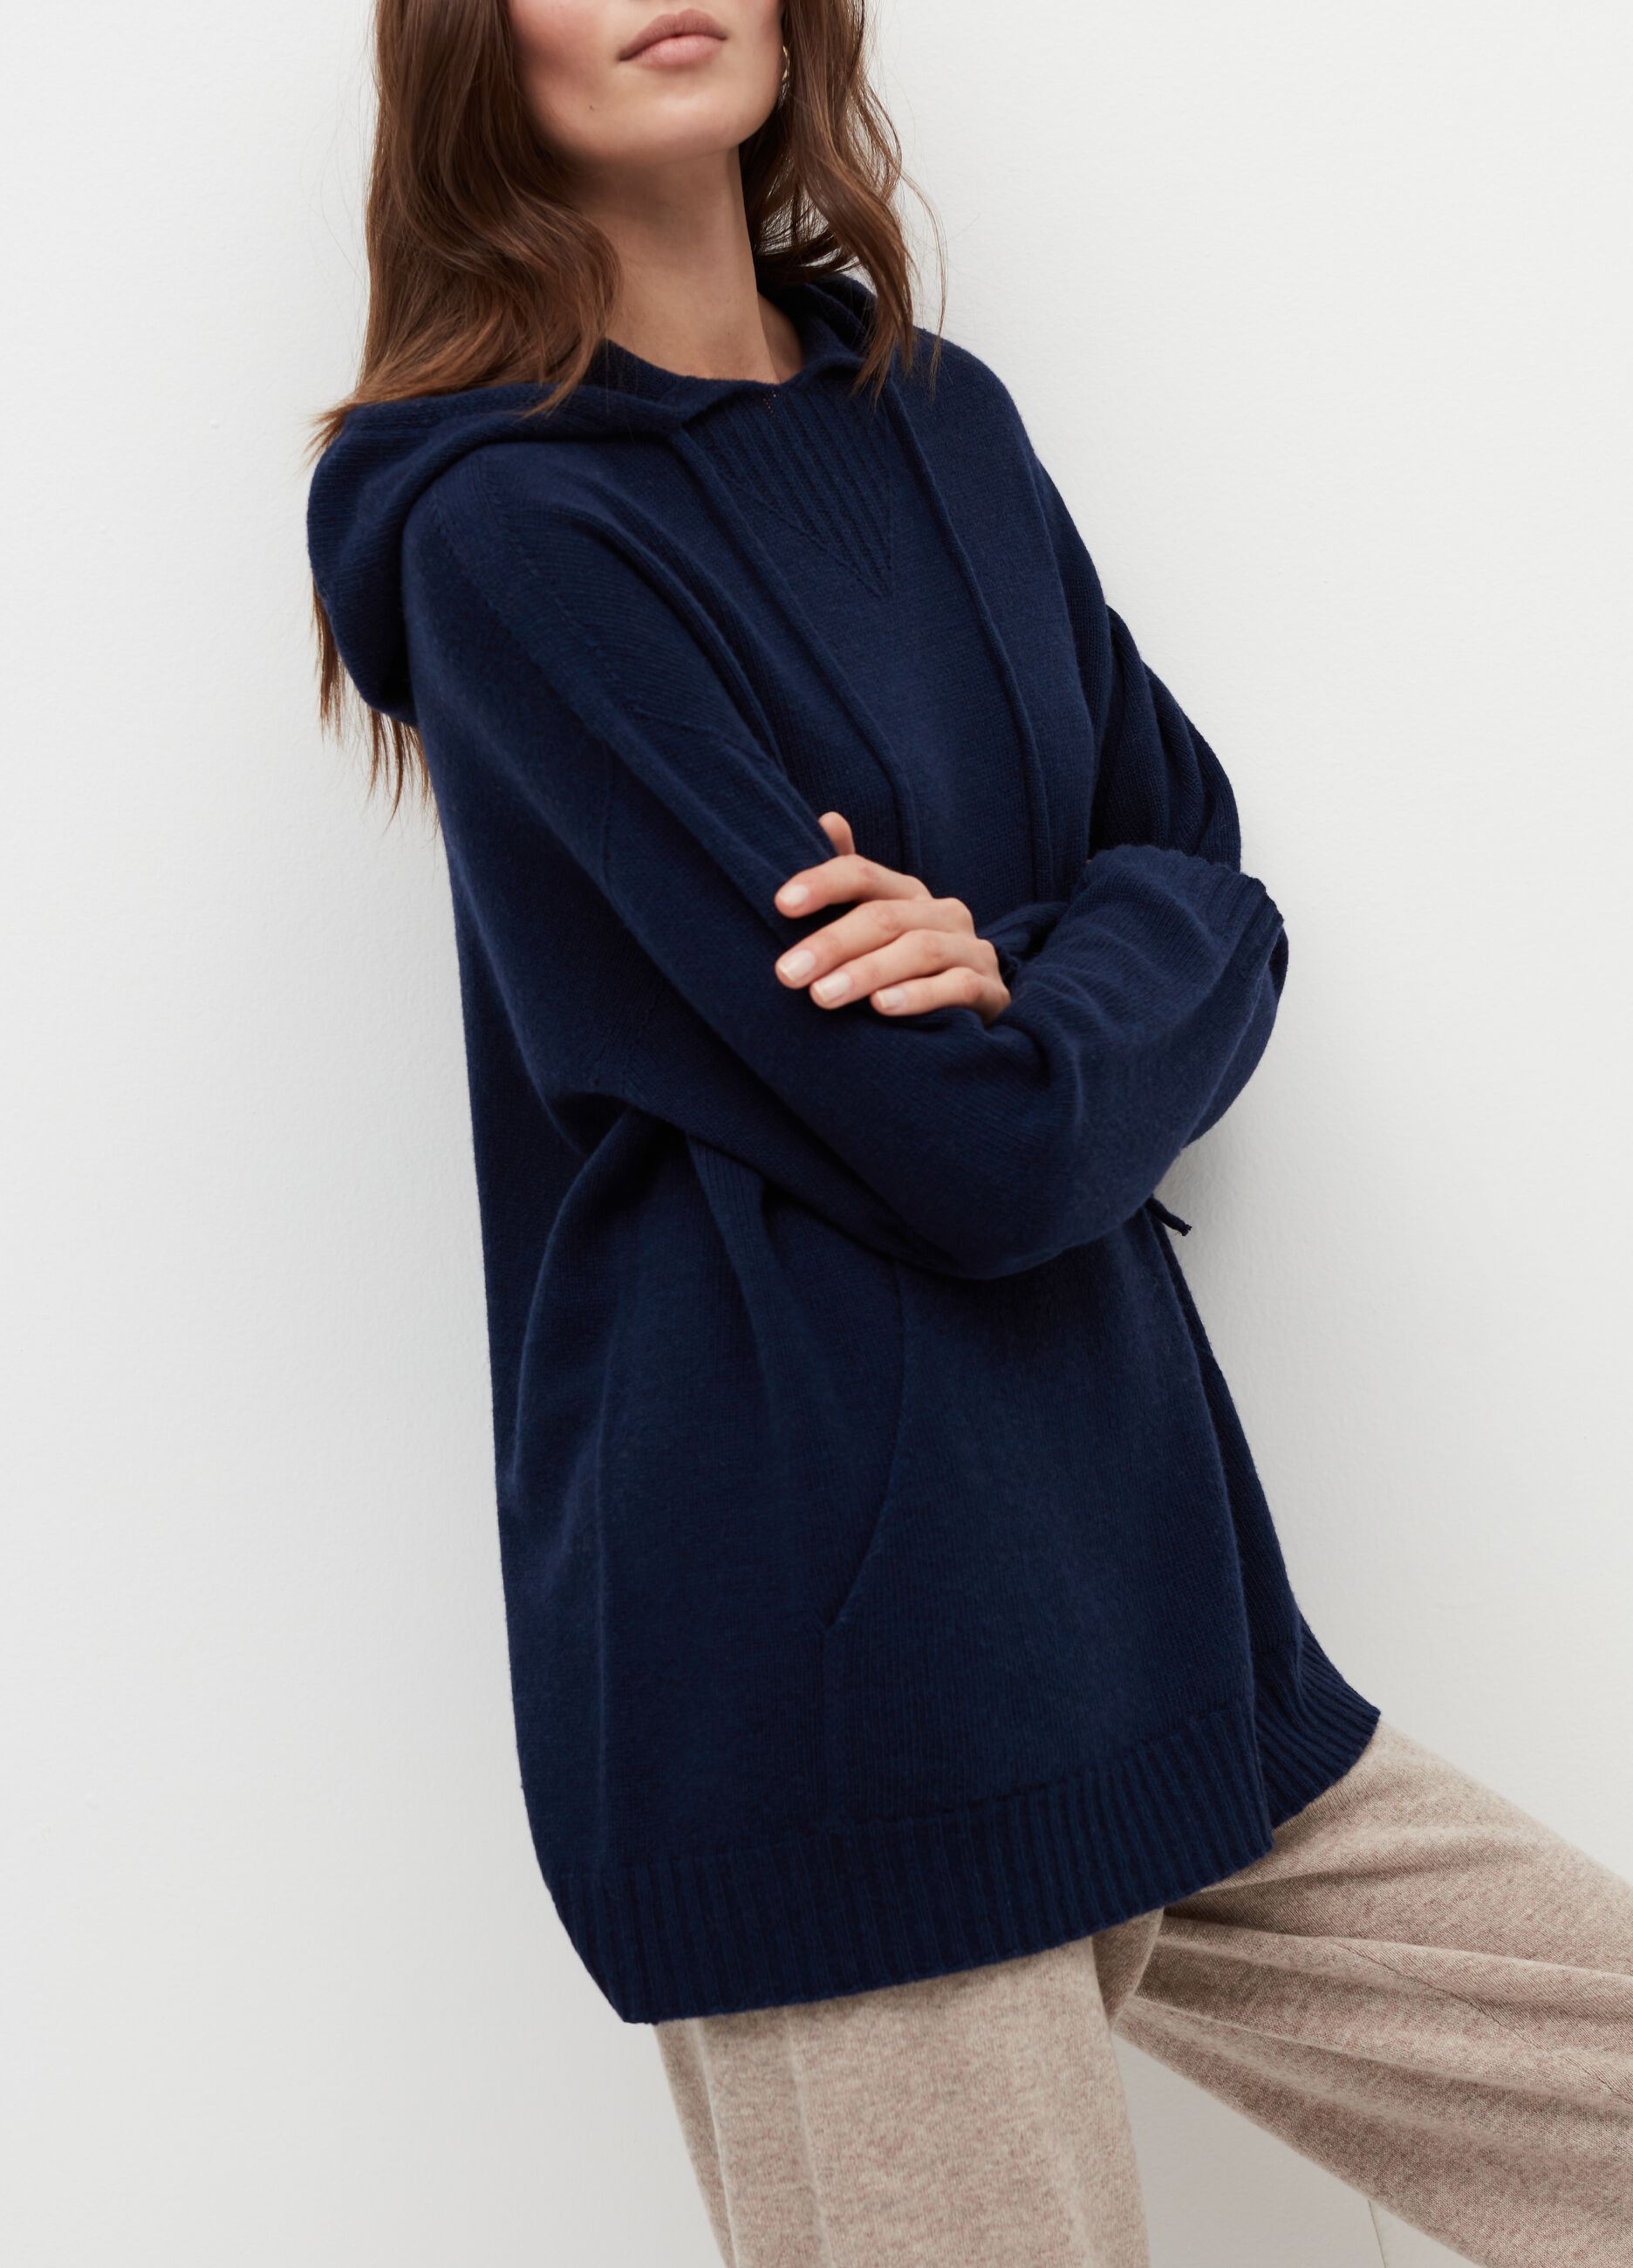 Pullover with hood in wool and cashmere. Blue